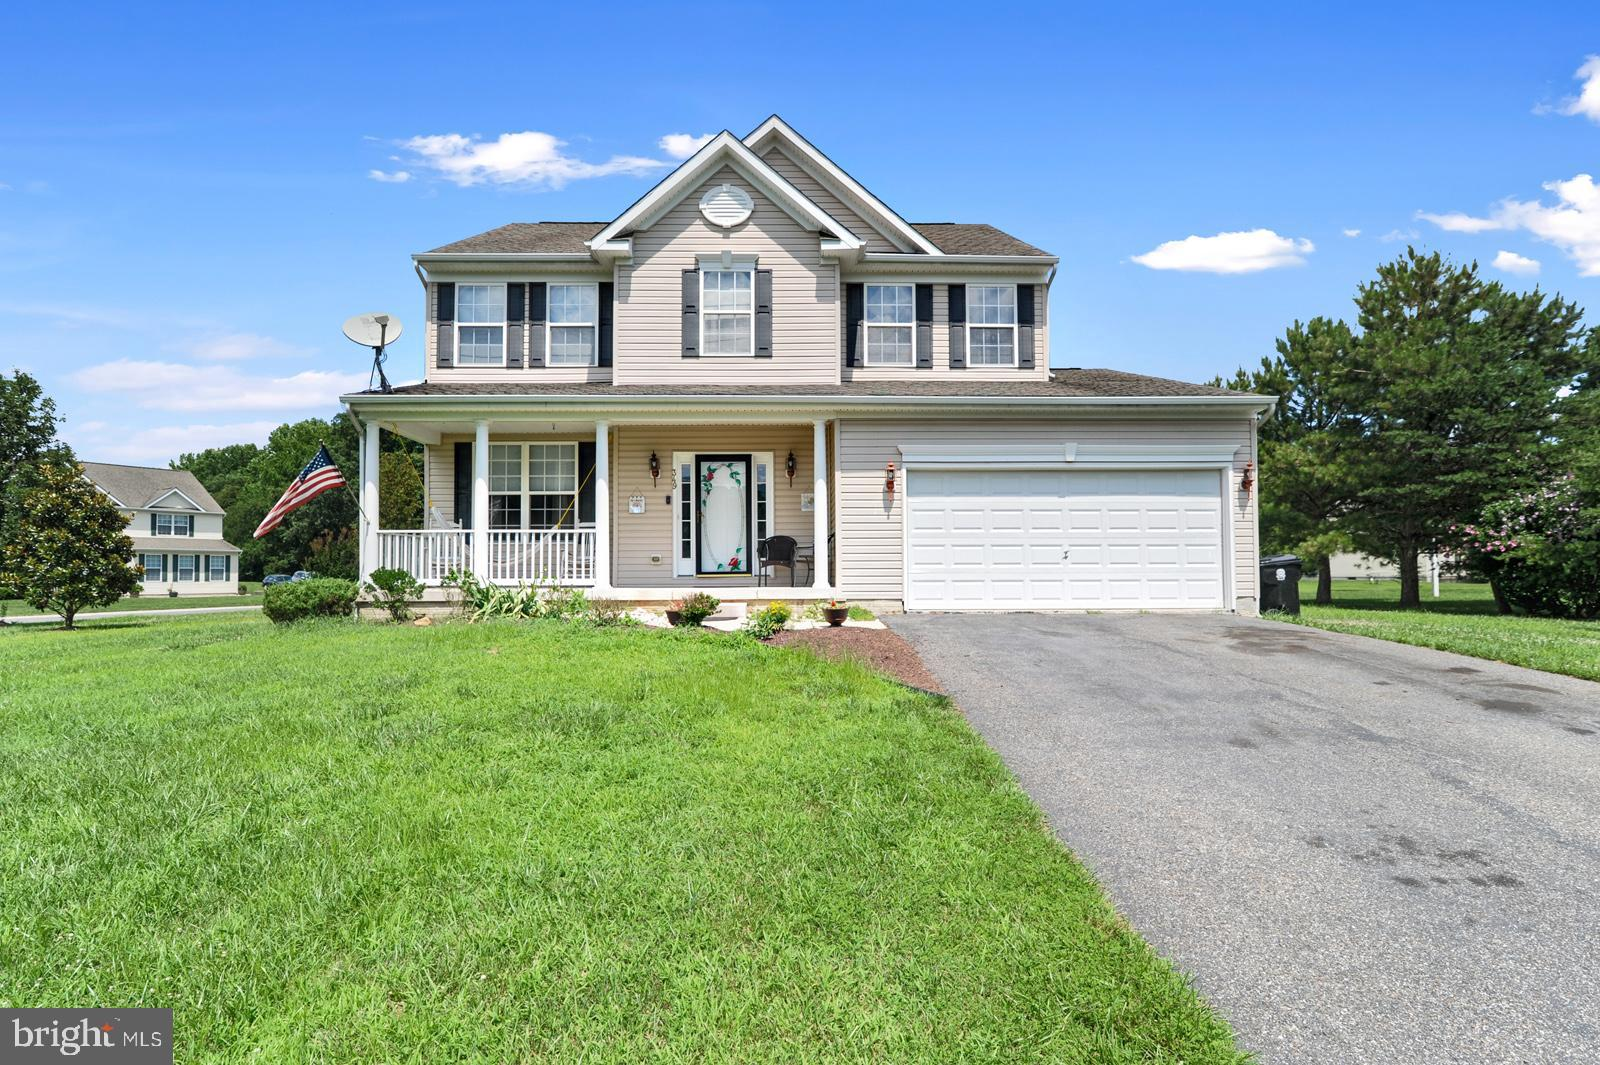 Welcome home to the highly desirable and well established community of Otter Run! This beautiful, 2-story contemporary home sits on over half an acre corner lot and offers 4 bedrooms, 2.5 bathrooms, living room, dining room, family room with a gas fireplace and finished basement. The kitchen has a newer stainless fridge, granite counters, gas cooking, microwave, island, dining space, pantry, and access to the large backyard. The master suite includes two closets, one being a walk-in with closet organizers, master bath with soaker tub, separate shower, and dual vanity. Three additional bedrooms and full bath with dual sinks round out the upstairs. The tiled basement with walk-out will provide great entertaining space, playroom, or man cave and has plenty of storage areas. Located in the Lake Forest School District, minutes from Delaware's popular beaches, shopping centers, restaurants, with convenient/quick access to Routes 1 & 13, and less than 10-miles to Dover Air Force Base. Hurry and schedule a showing today before this lovely gem is no longer available!